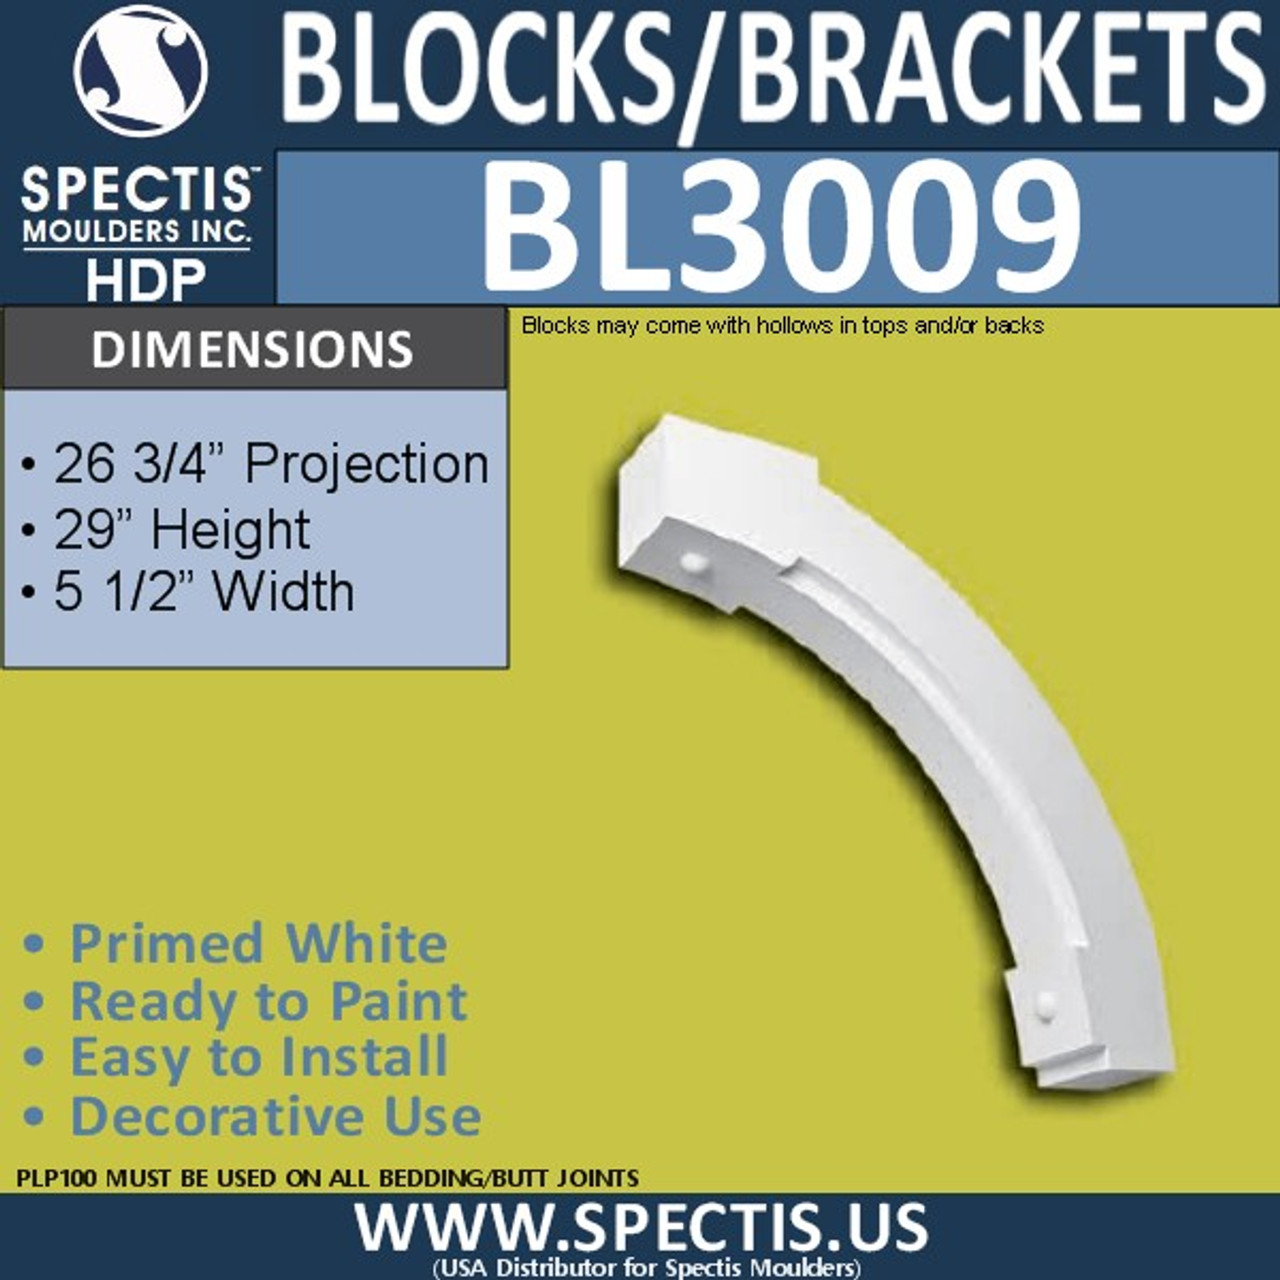 "BL3009 Eave Block or Bracket 5.5""W x 29""H x 26.75"" P"